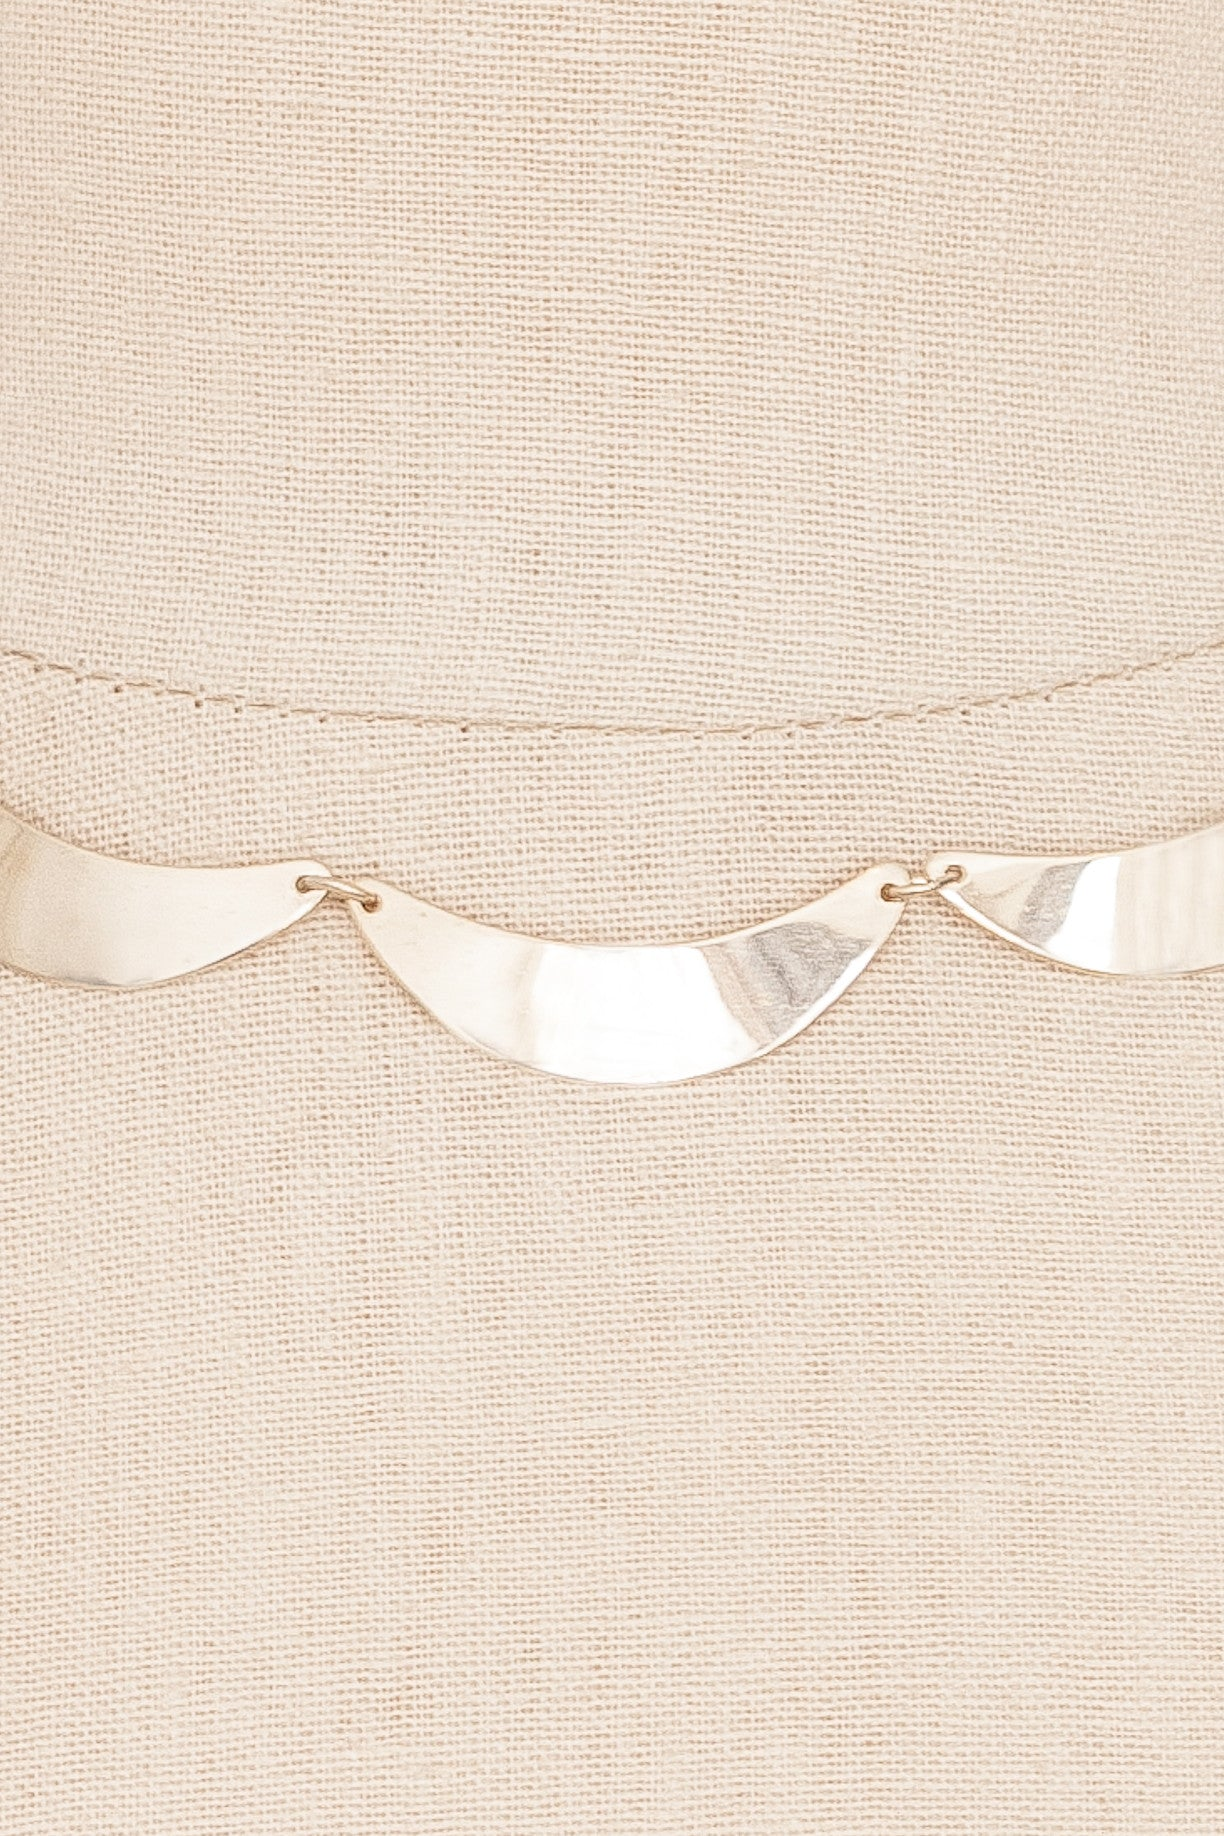 70's__Emmons__Bar Necklace